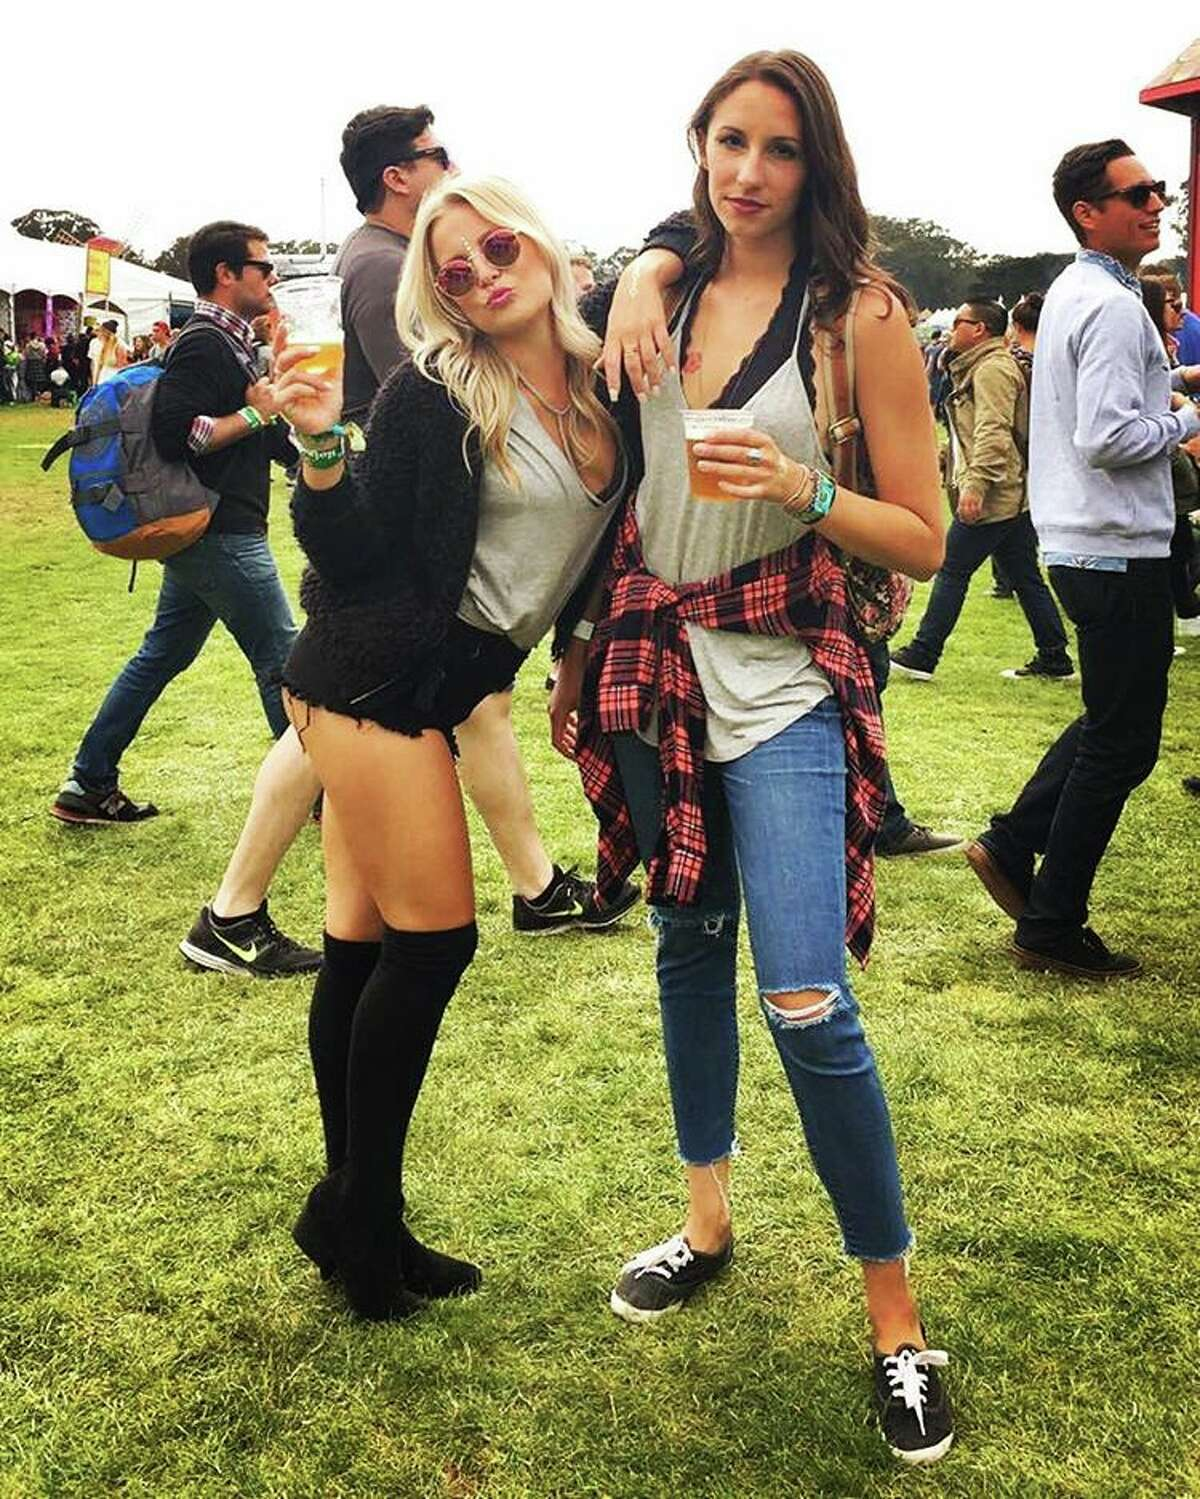 Outside Lands music festival goers show off their style during the three day event.